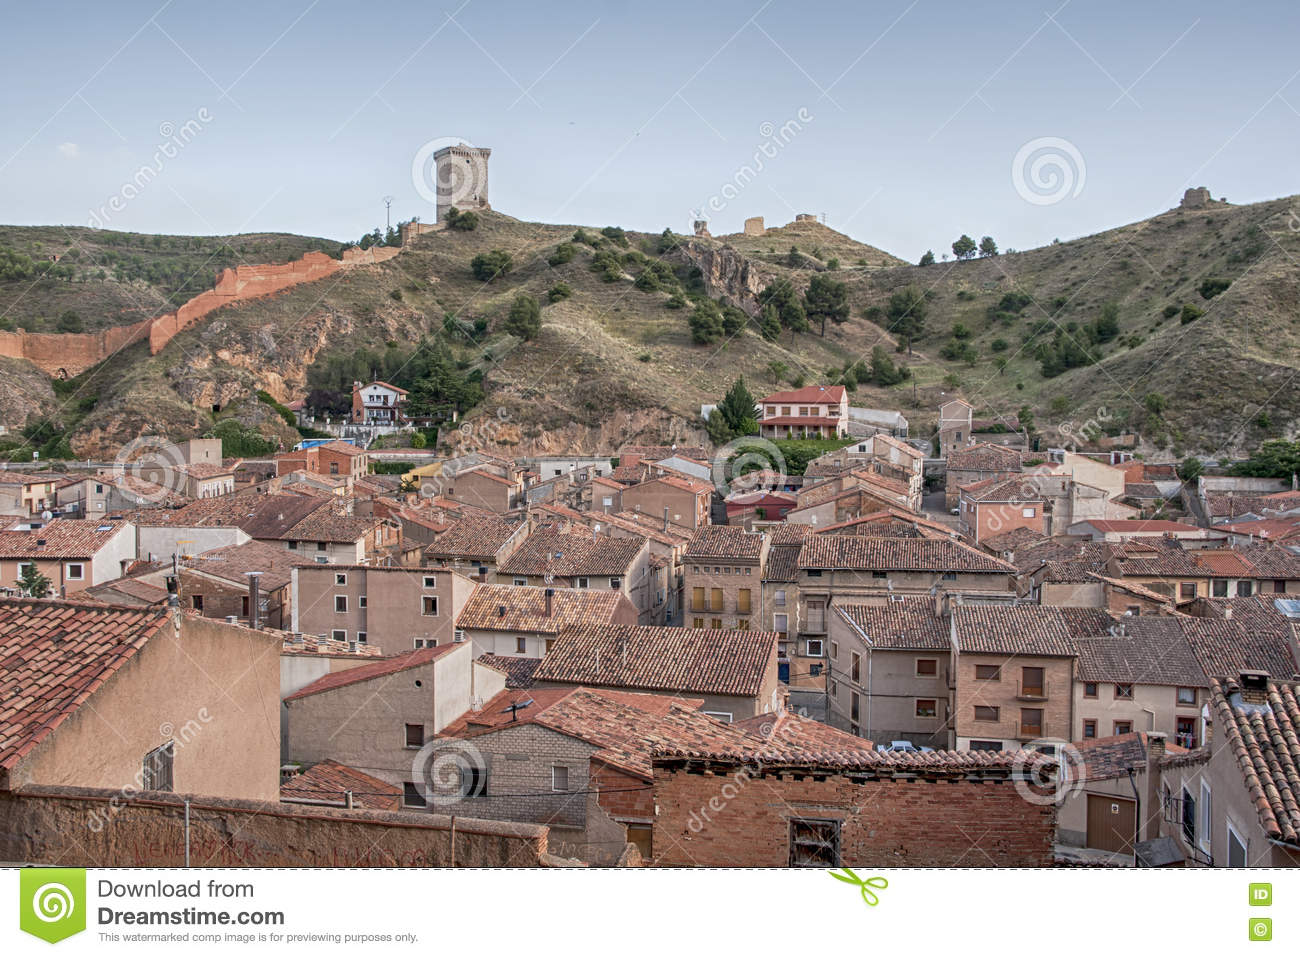 Medieval Villages Of Spain, Daroca In The Province Of Zaragoza.